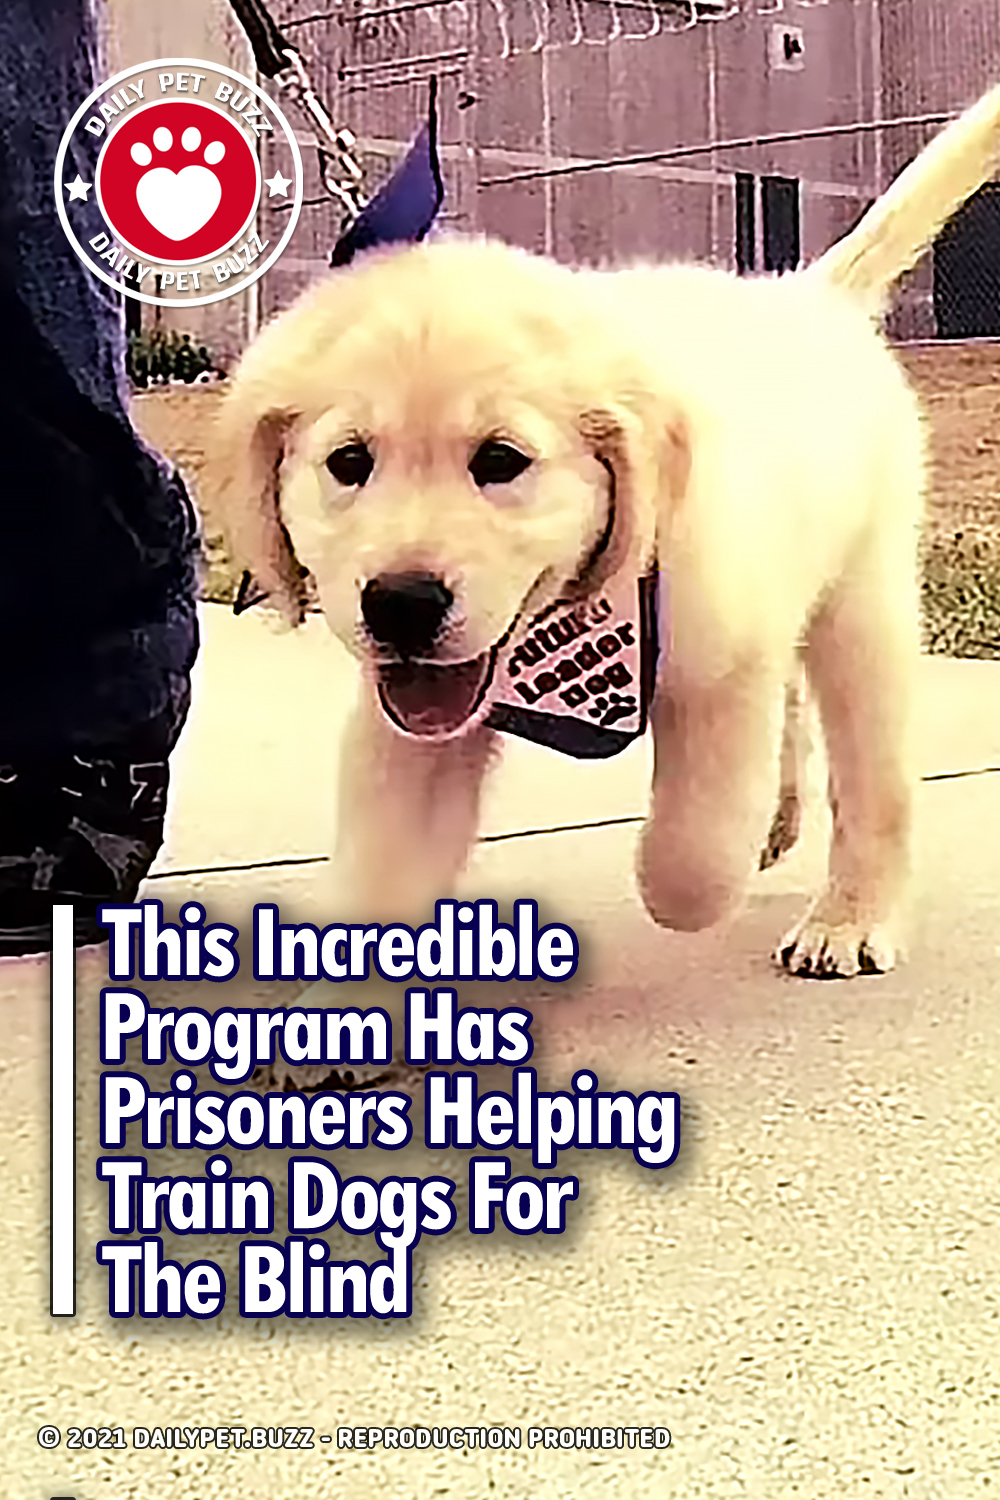 This Incredible Program Has Prisoners Helping Train Dogs For The Blind